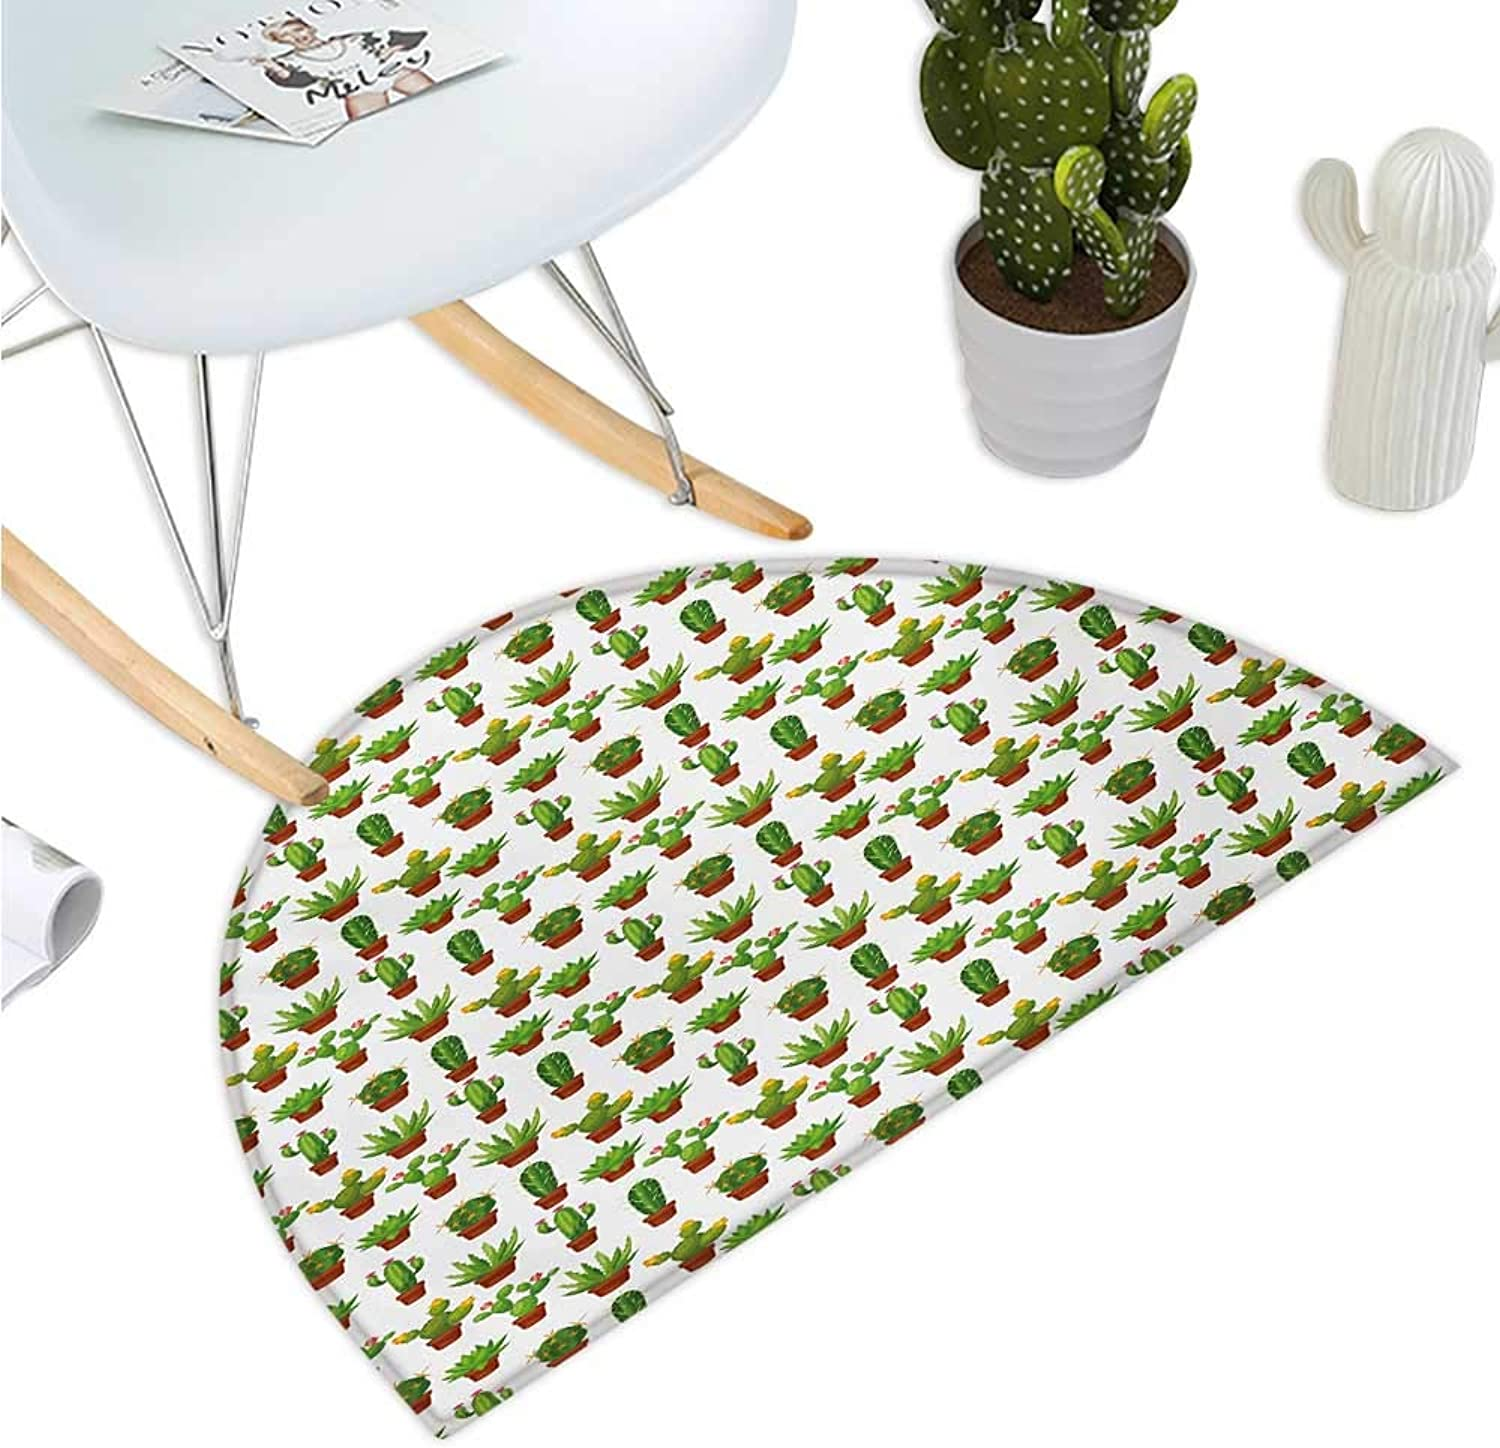 Cactus Semicircle Doormat Abstract Floral Pattern with Vases and Pots Botany Spring Season Cartoon Entry Door Mat H 43.3  xD 64.9  Green Brown Marigold